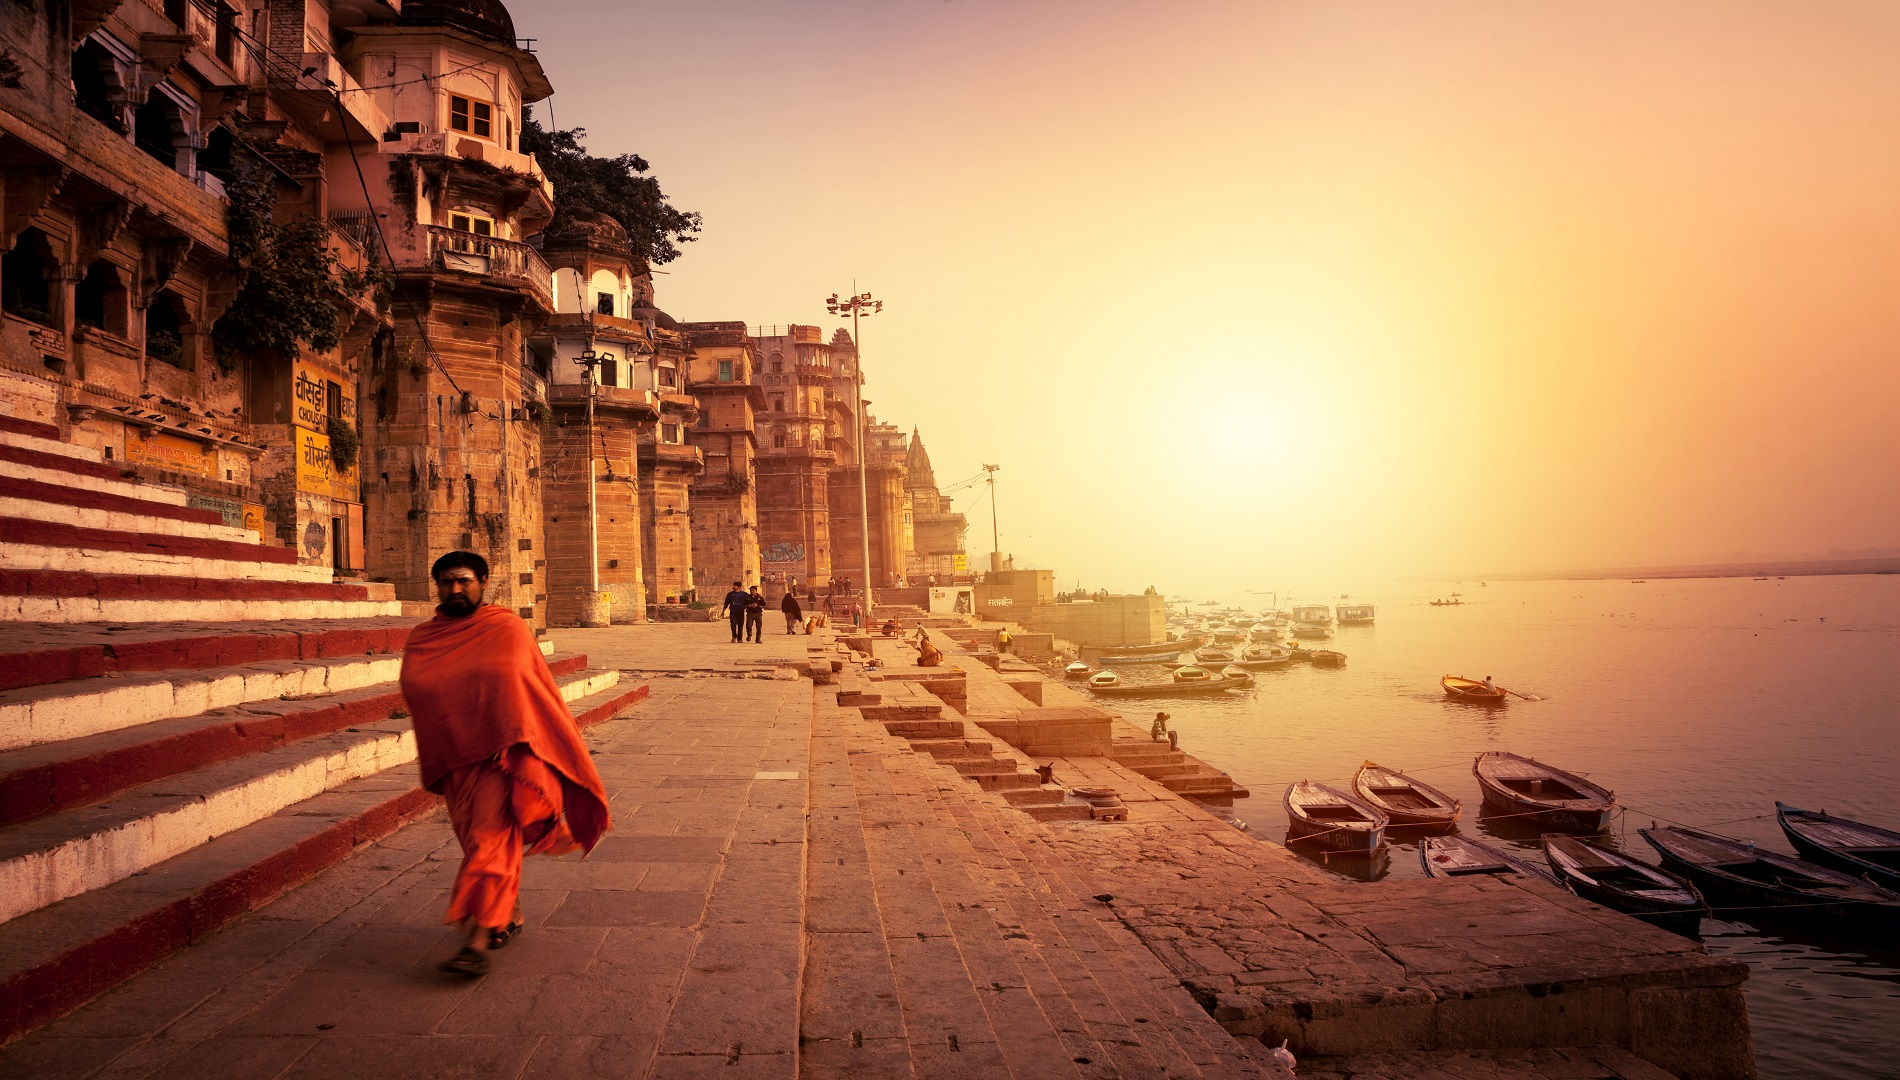 The Kashi Ghat Experience